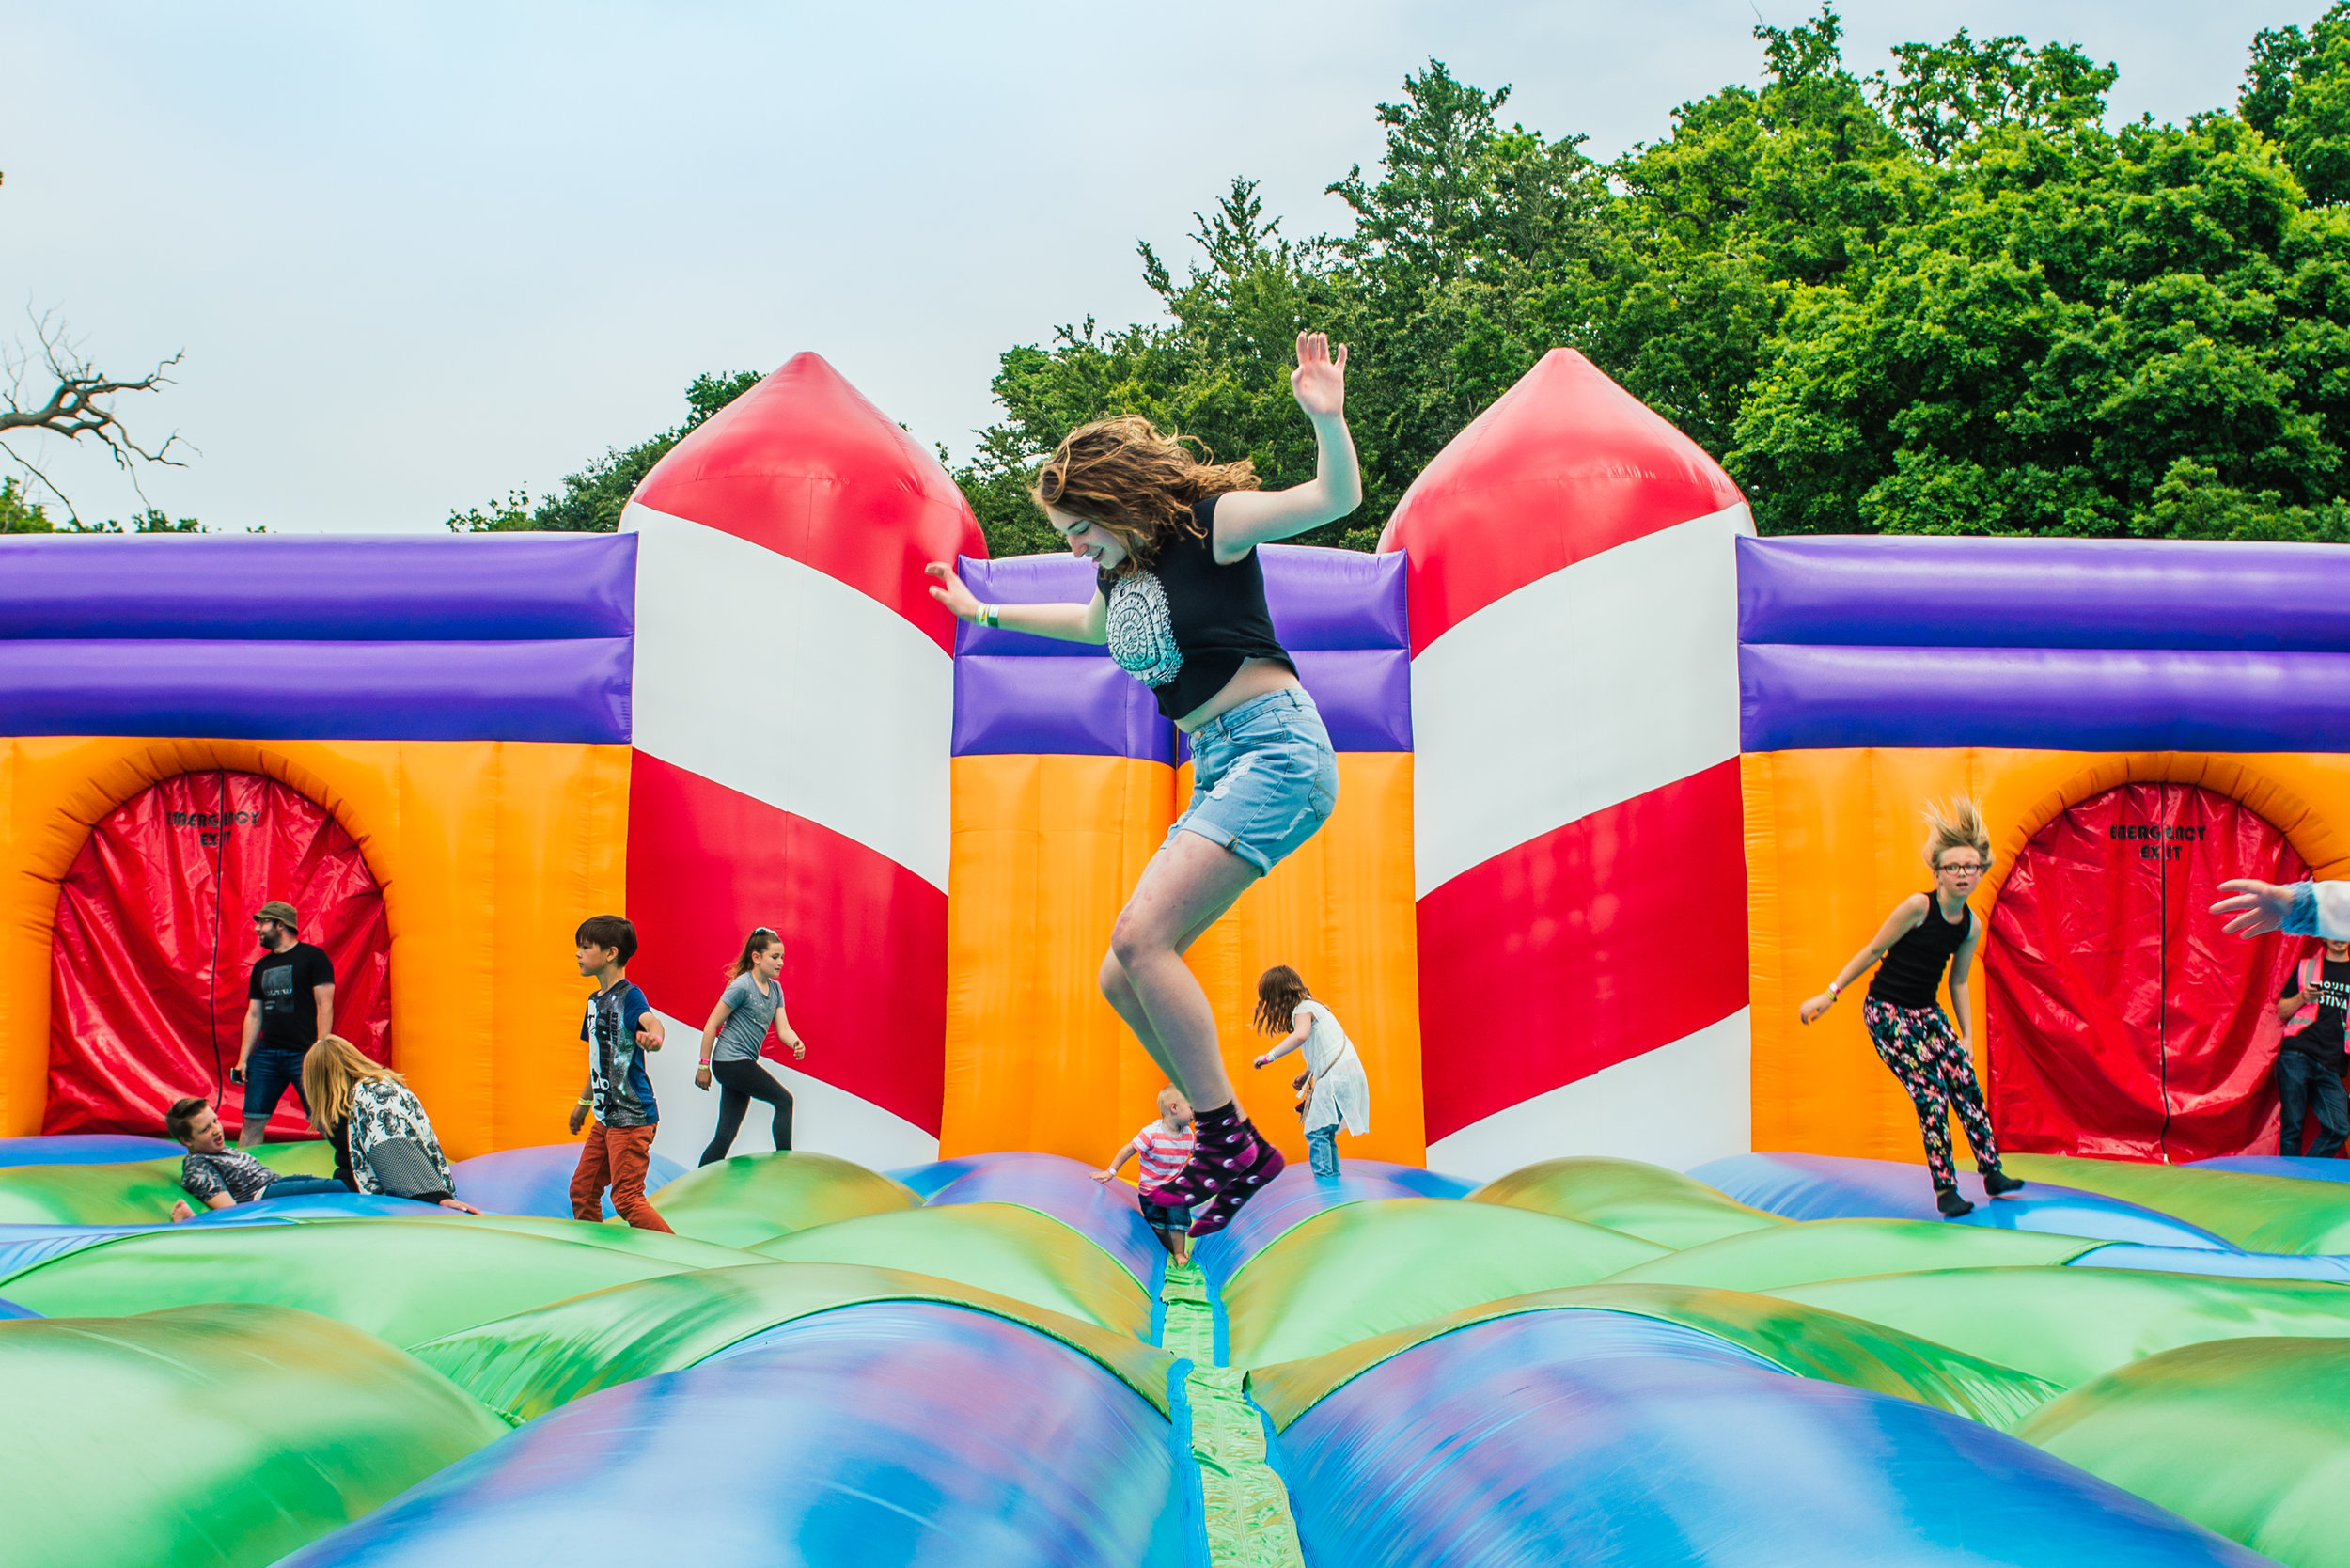 160528132924 - Atmos_Bouncy Castle - GJP_0411.jpg